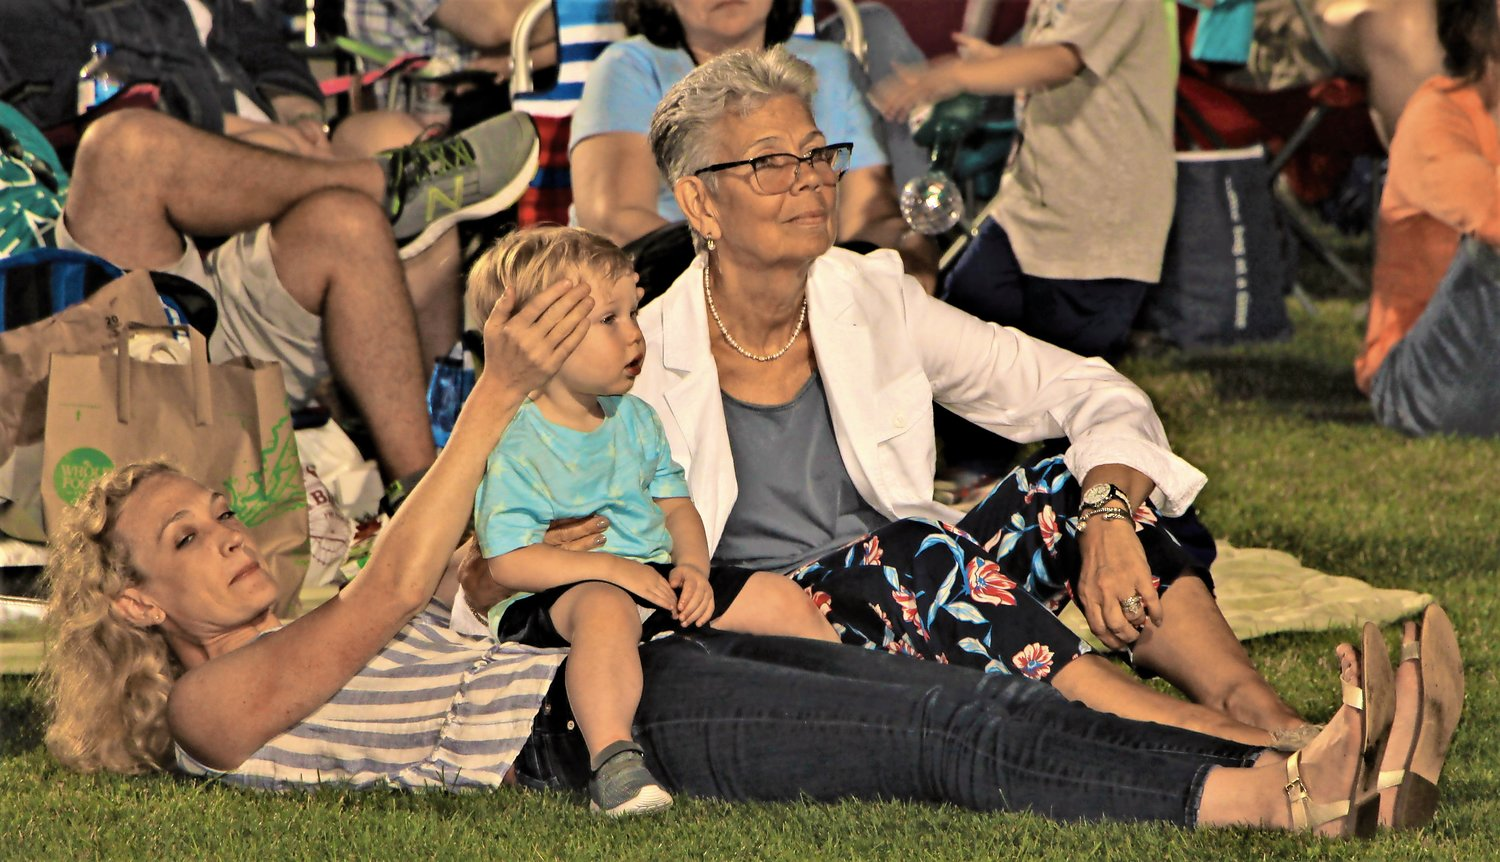 Karen Lipton with  Liam Douglas (2yrs) and Sarah Lipton Douglas watching the South Shore Orchestra perform.